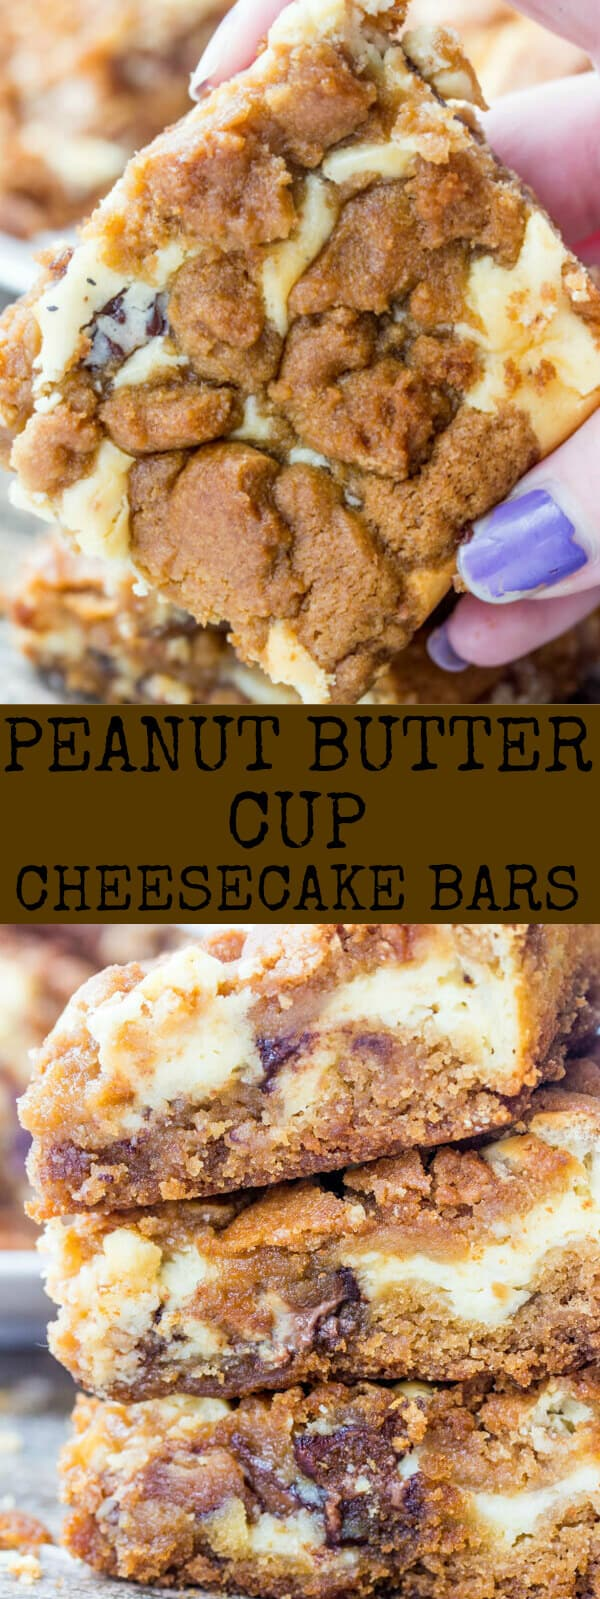 Peanut Butter Cup Cheesecake Bars